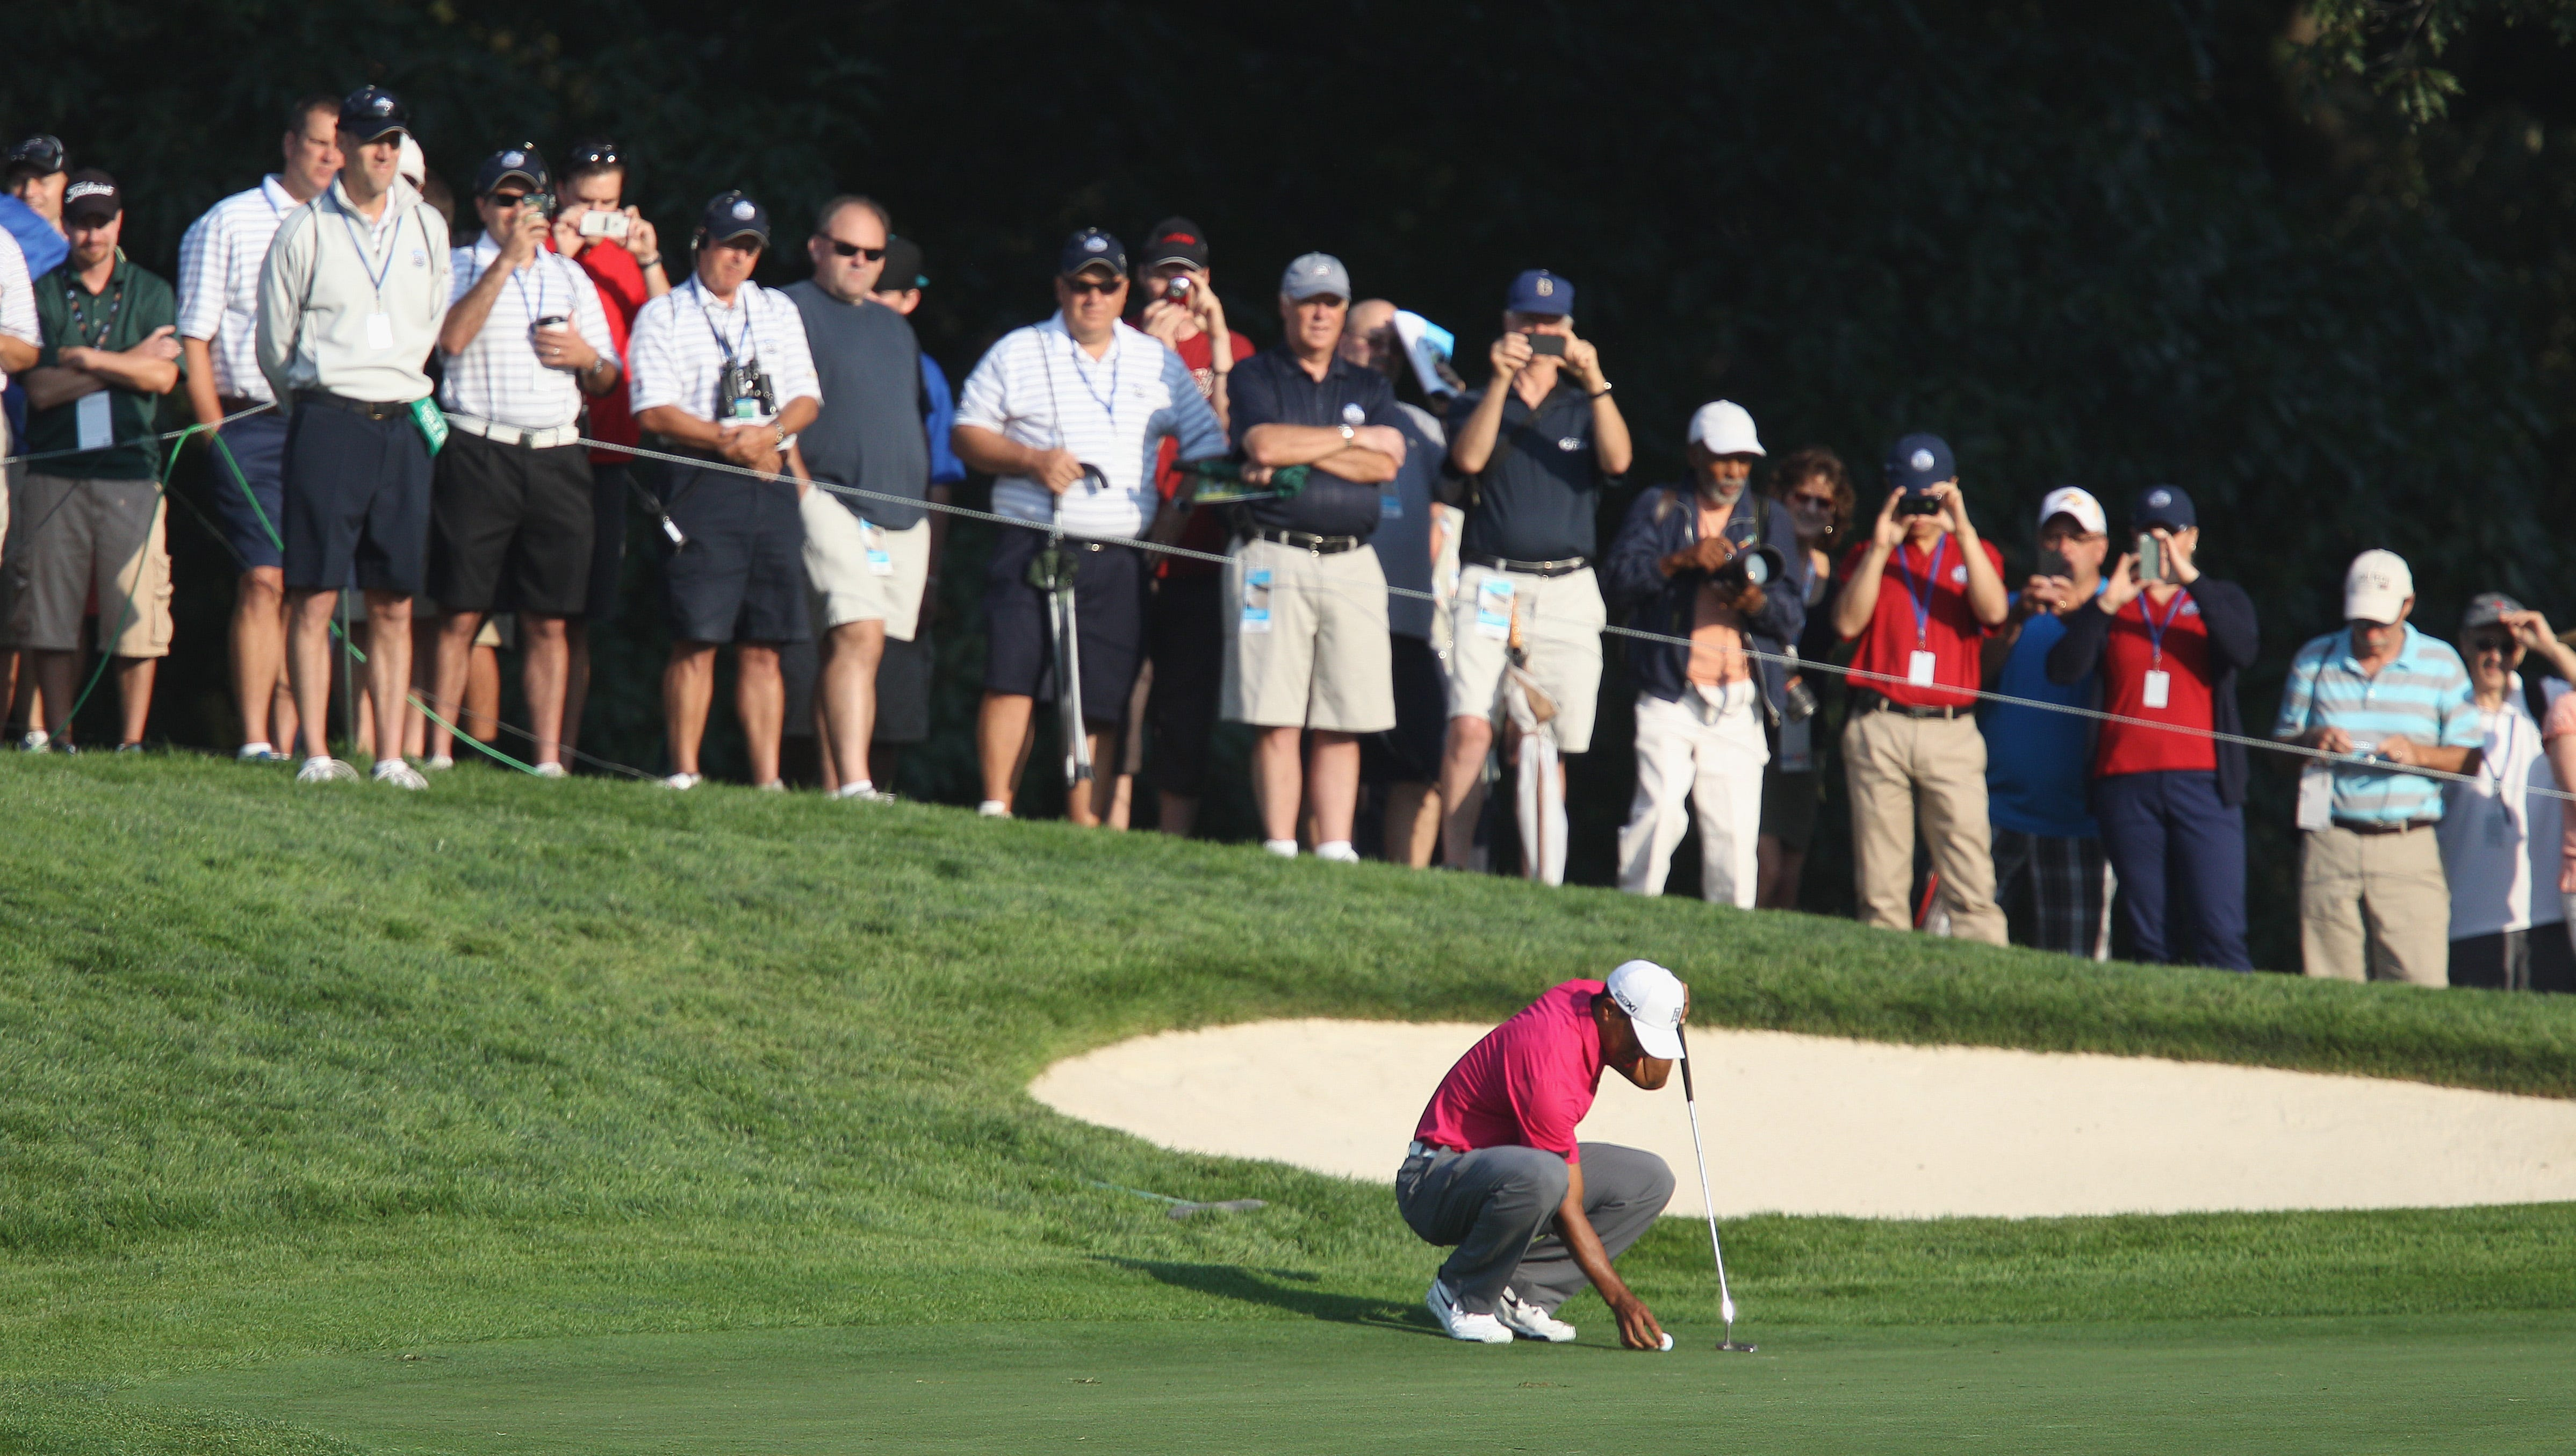 The crowd around the 3rd green during Tiger Woods's practice round.